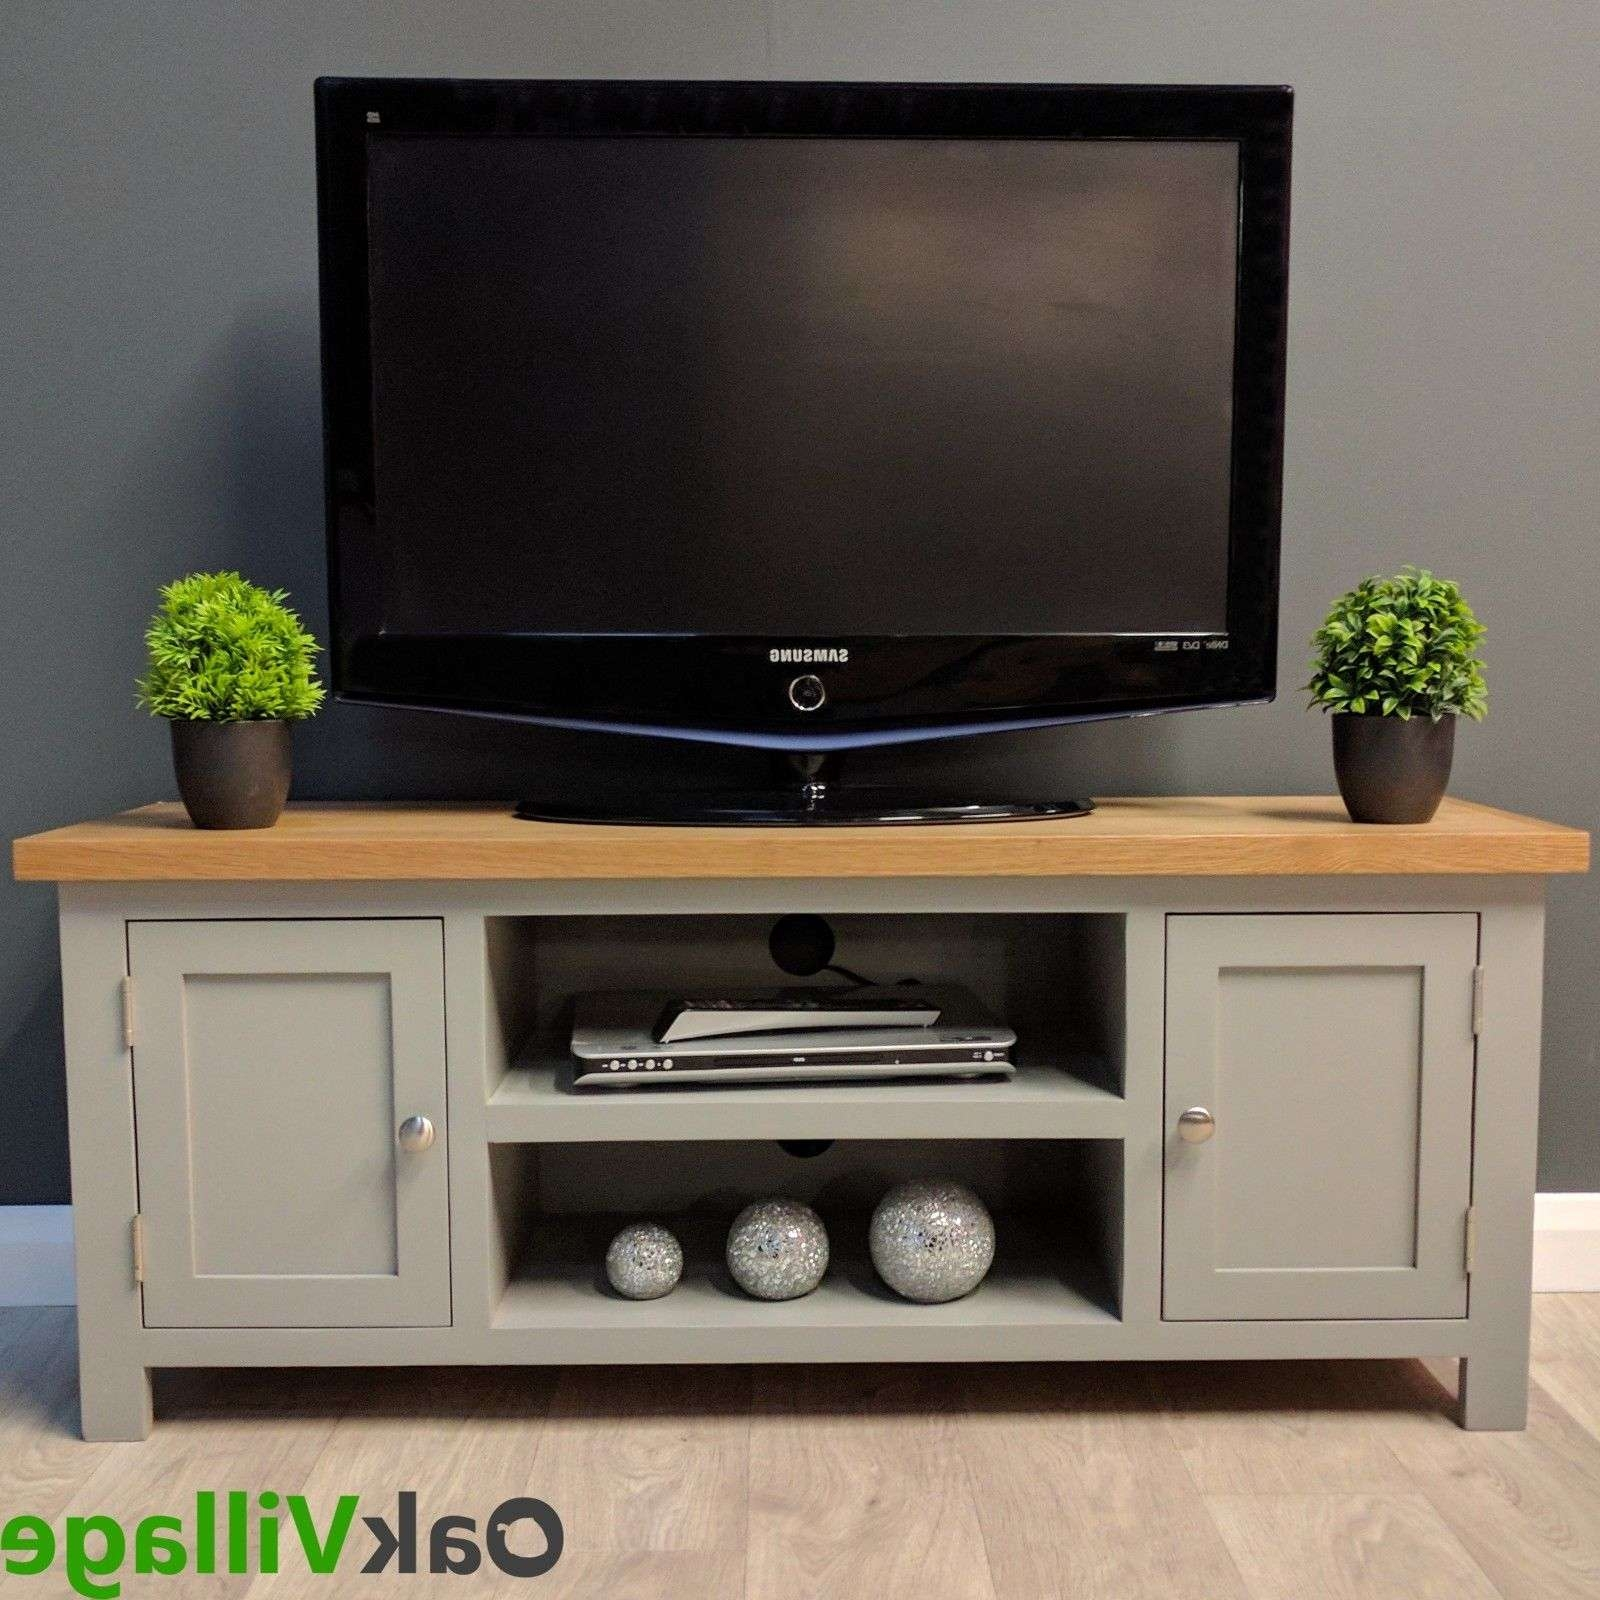 Oak Tv Stands | Ebay Pertaining To Cheap Oak Tv Stands (View 2 of 15)